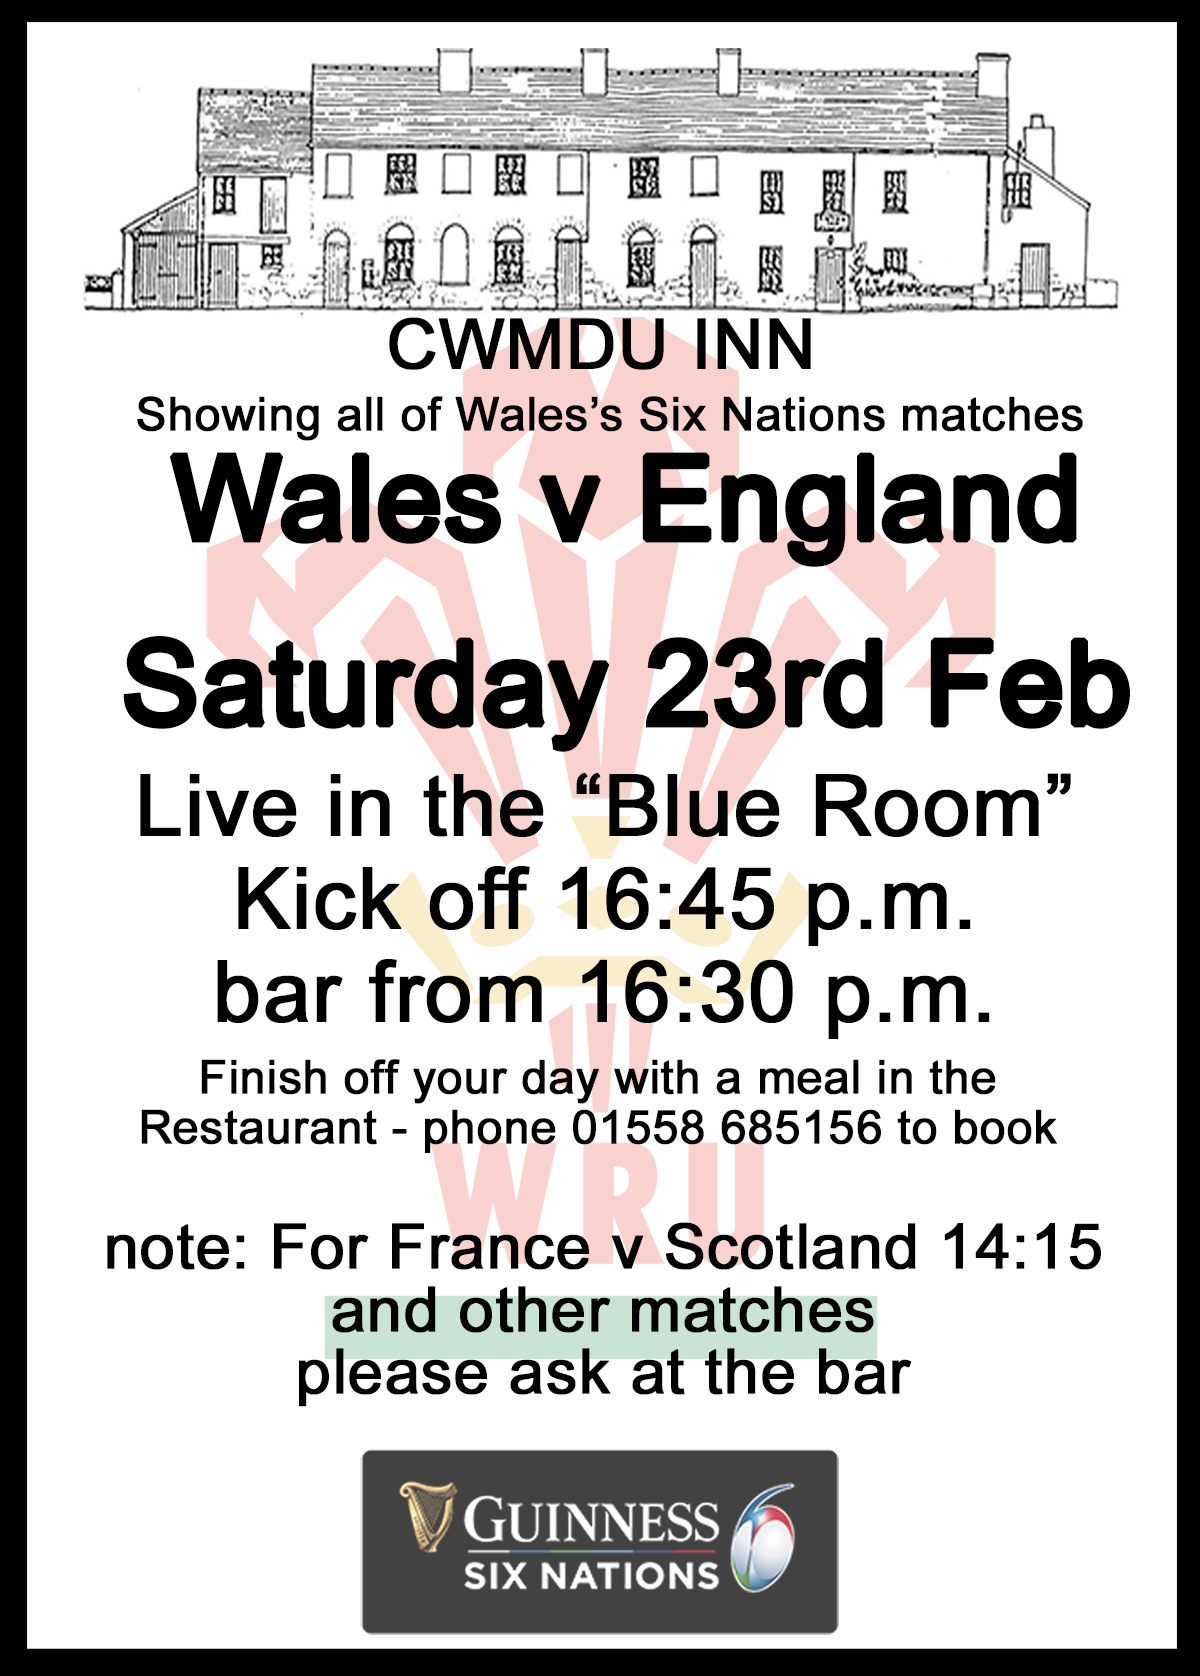 "Wales v England Guinness 6 Nations Rugby Feb 23rd at the Cwmdu Inn, ""Blue Room"" - bar open from 16:30"